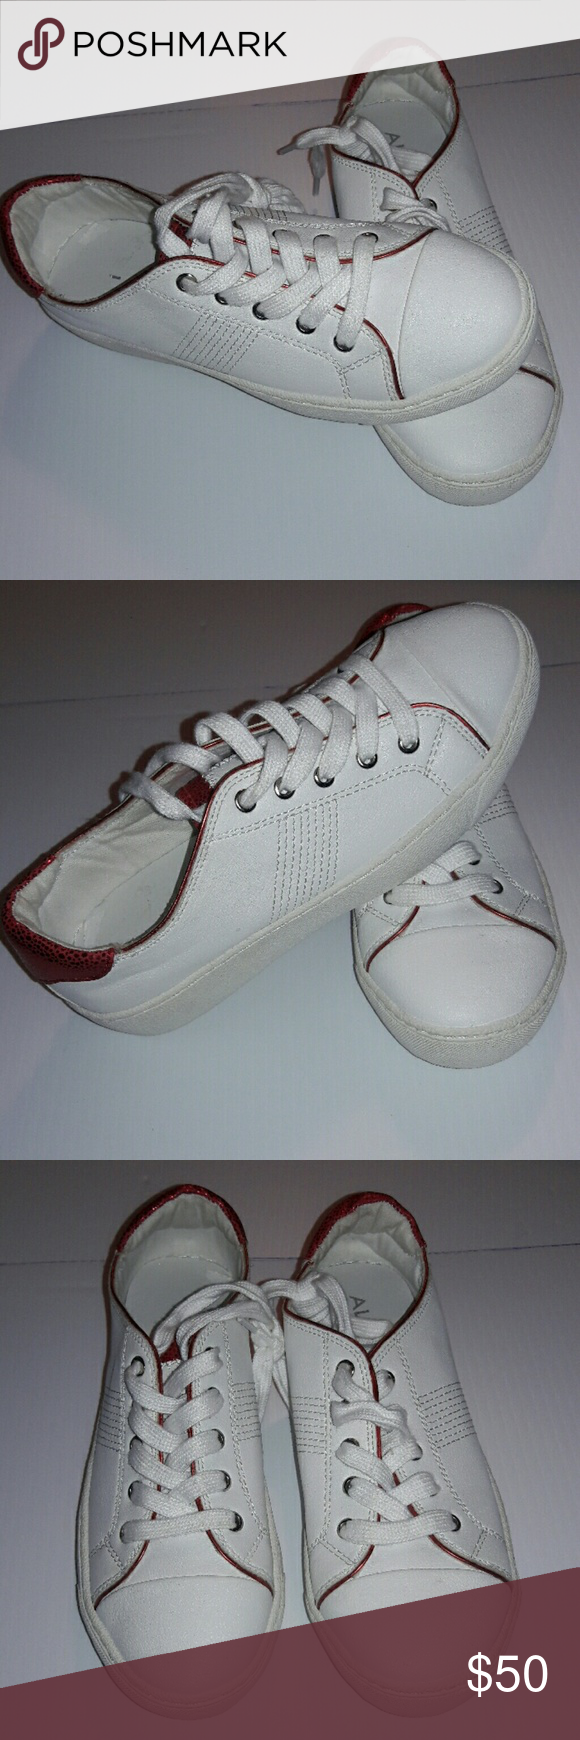 Also white leather platform sneakers new New without tags, no box Aldo Shoes Sneakers